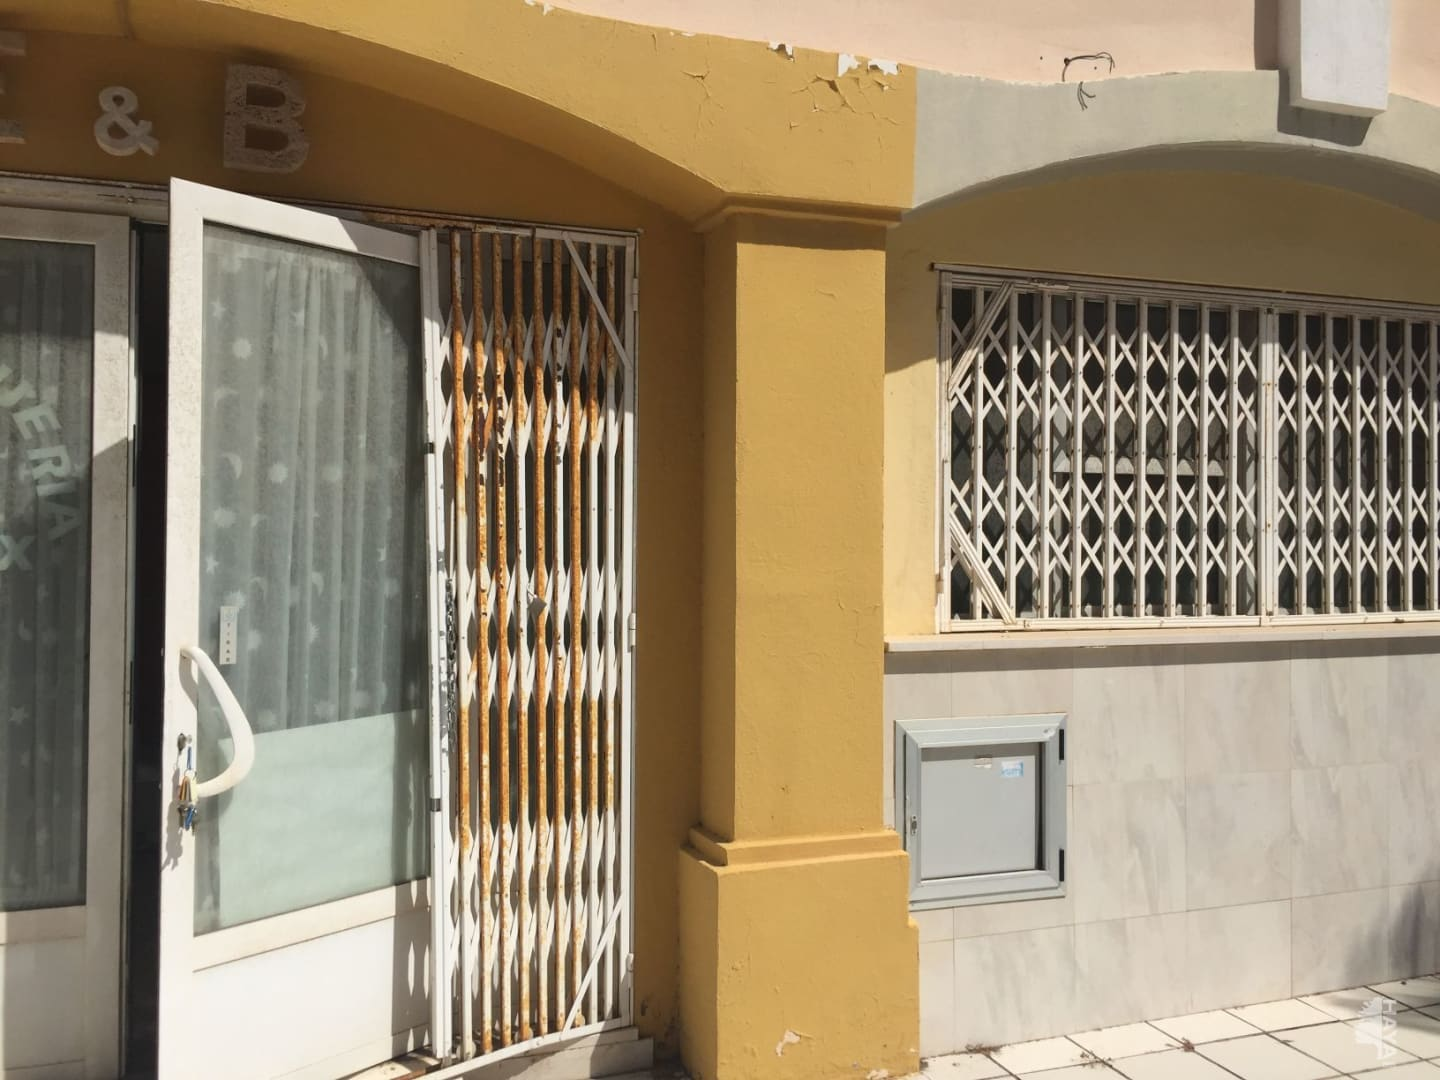 Local en venta en Playa Serena, Roquetas de Mar, Almería, Paseo Central, 73.000 €, 65 m2